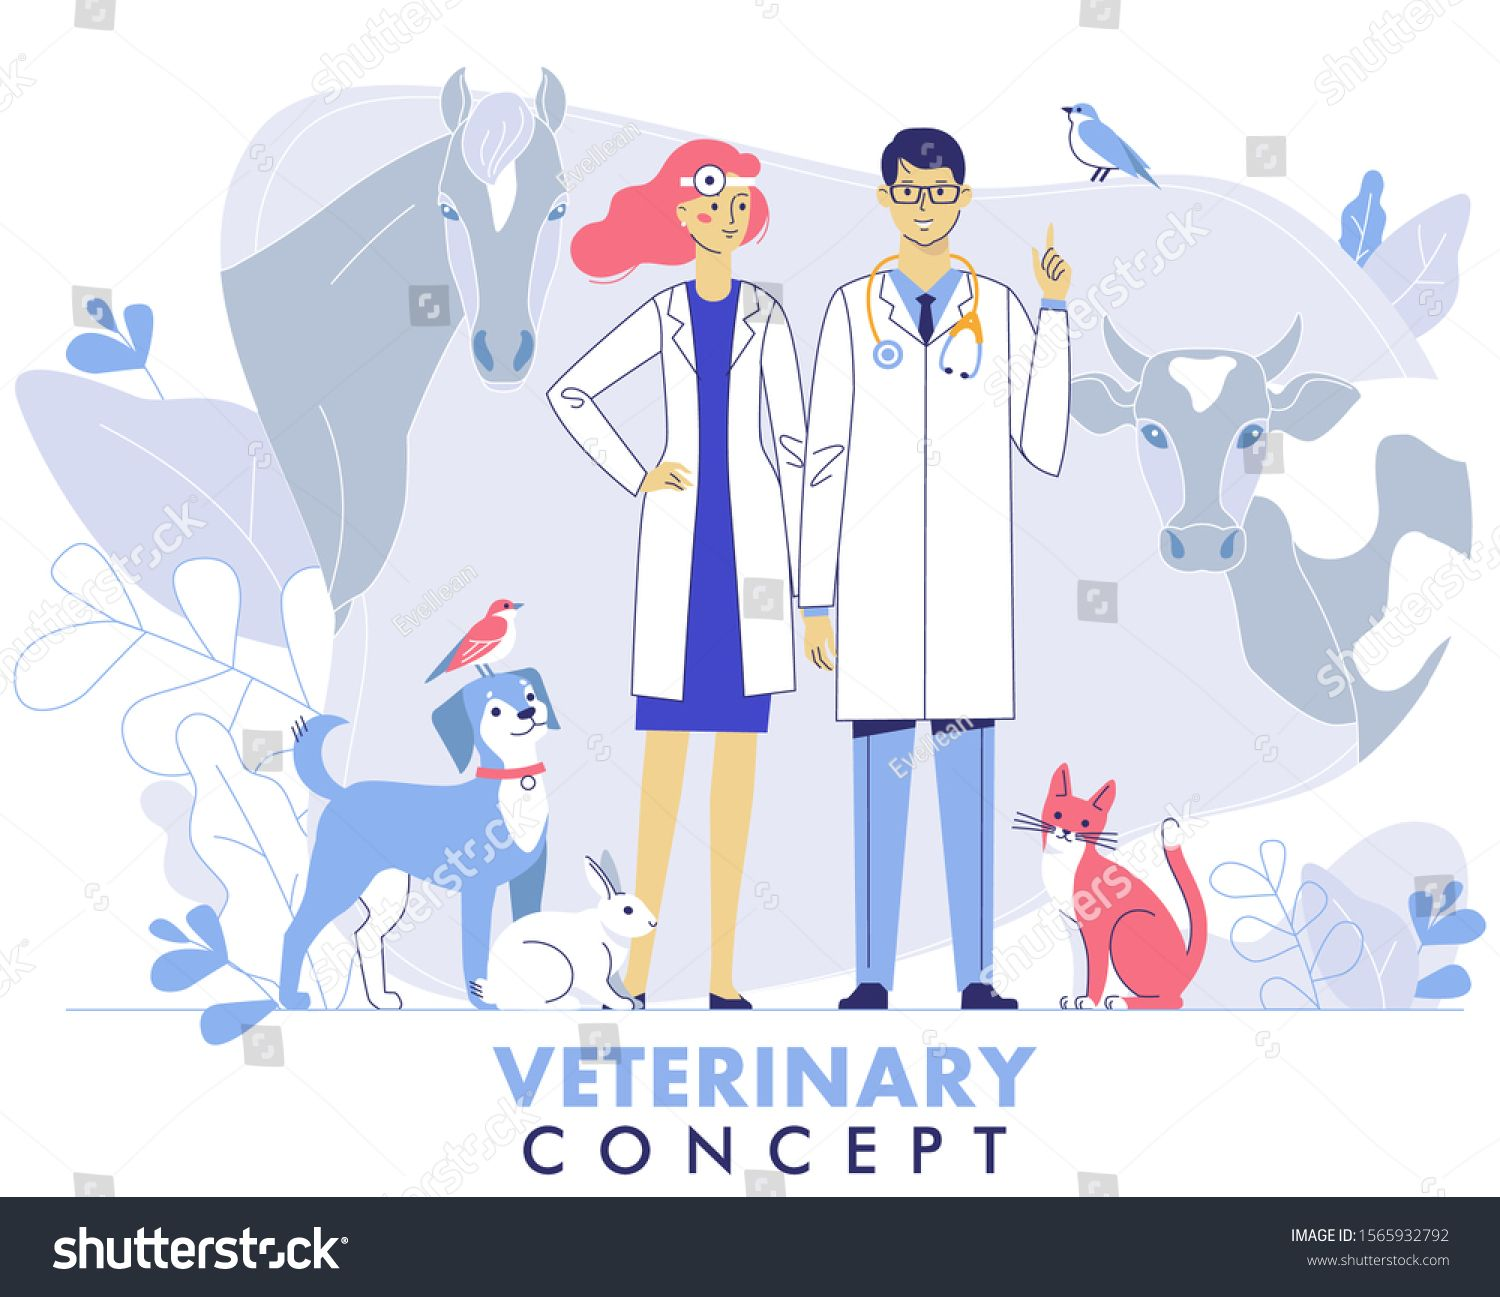 Veterinary Concept With Livestock Animals Pets And Doctors In Vet Clinic Young Veterinarian Man And Woman Standing Tog Ad In 2020 Vet Clinics Dog Coats Veterinary